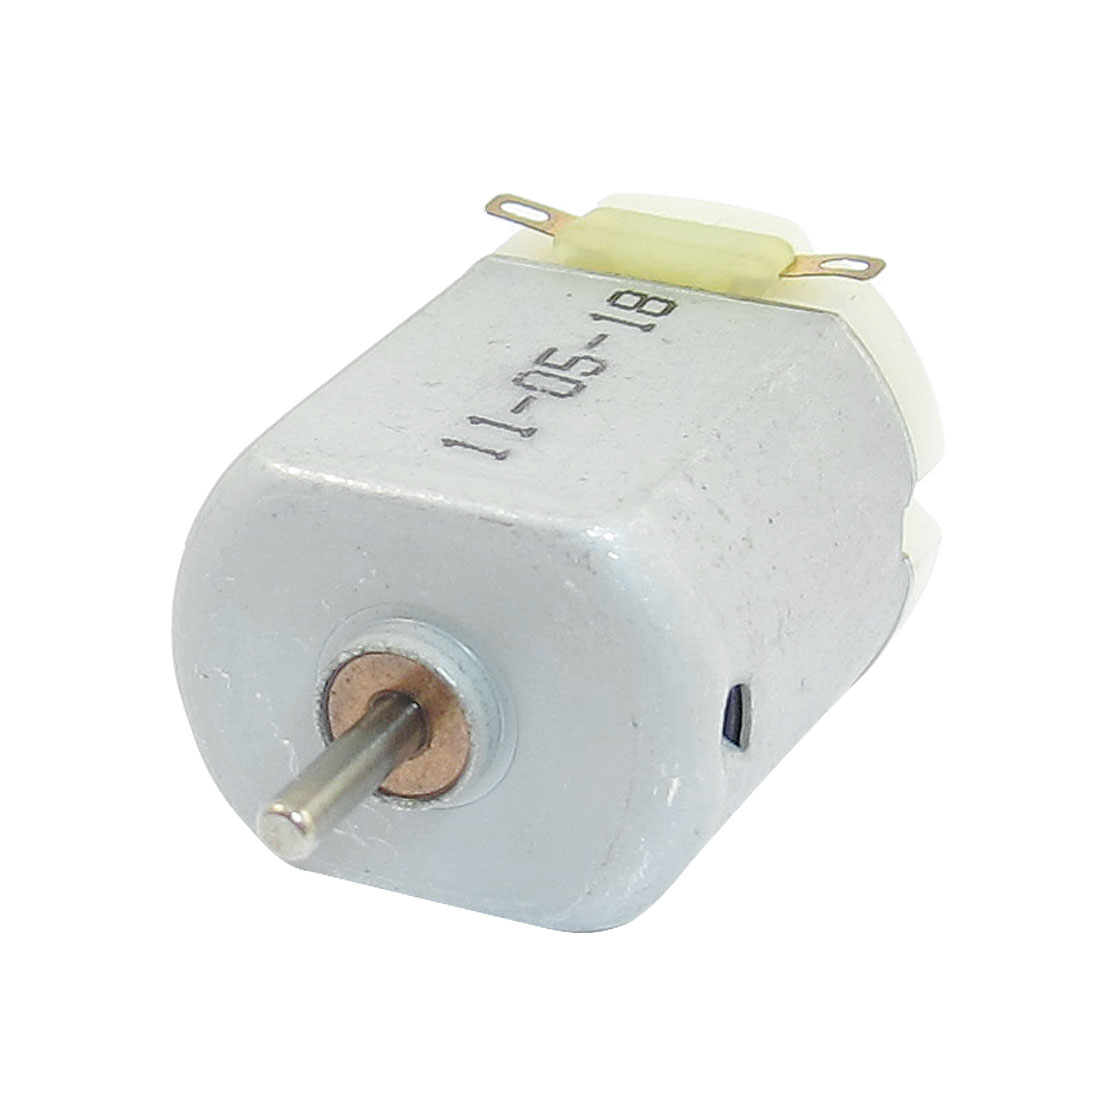 6300-23000RPM 3-6V High Torque Magnetic Electric Mini DC Motor